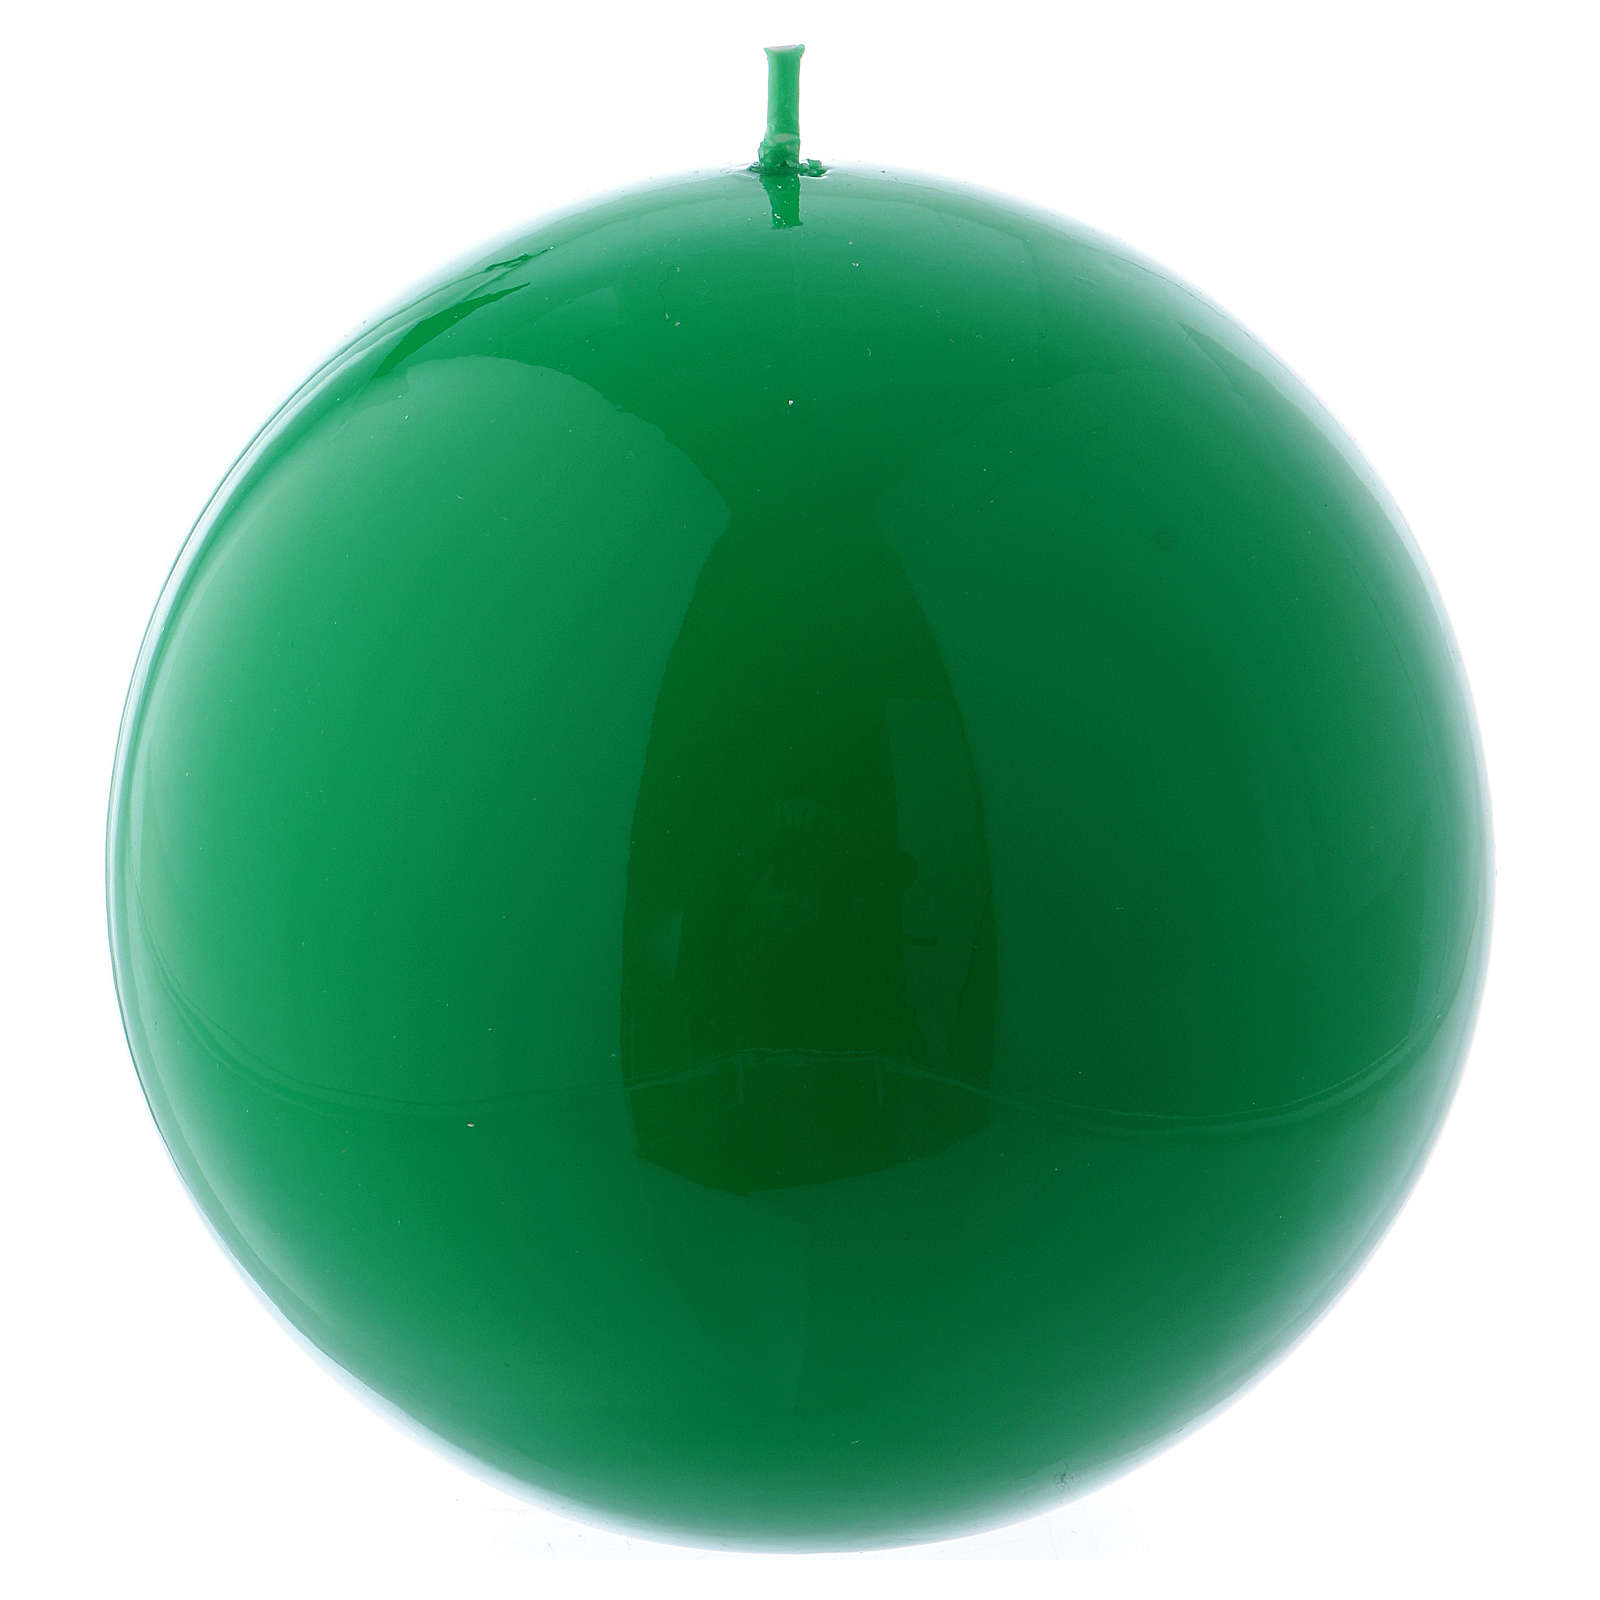 Spherical green Ceralacca candle diameter 12 cm 3